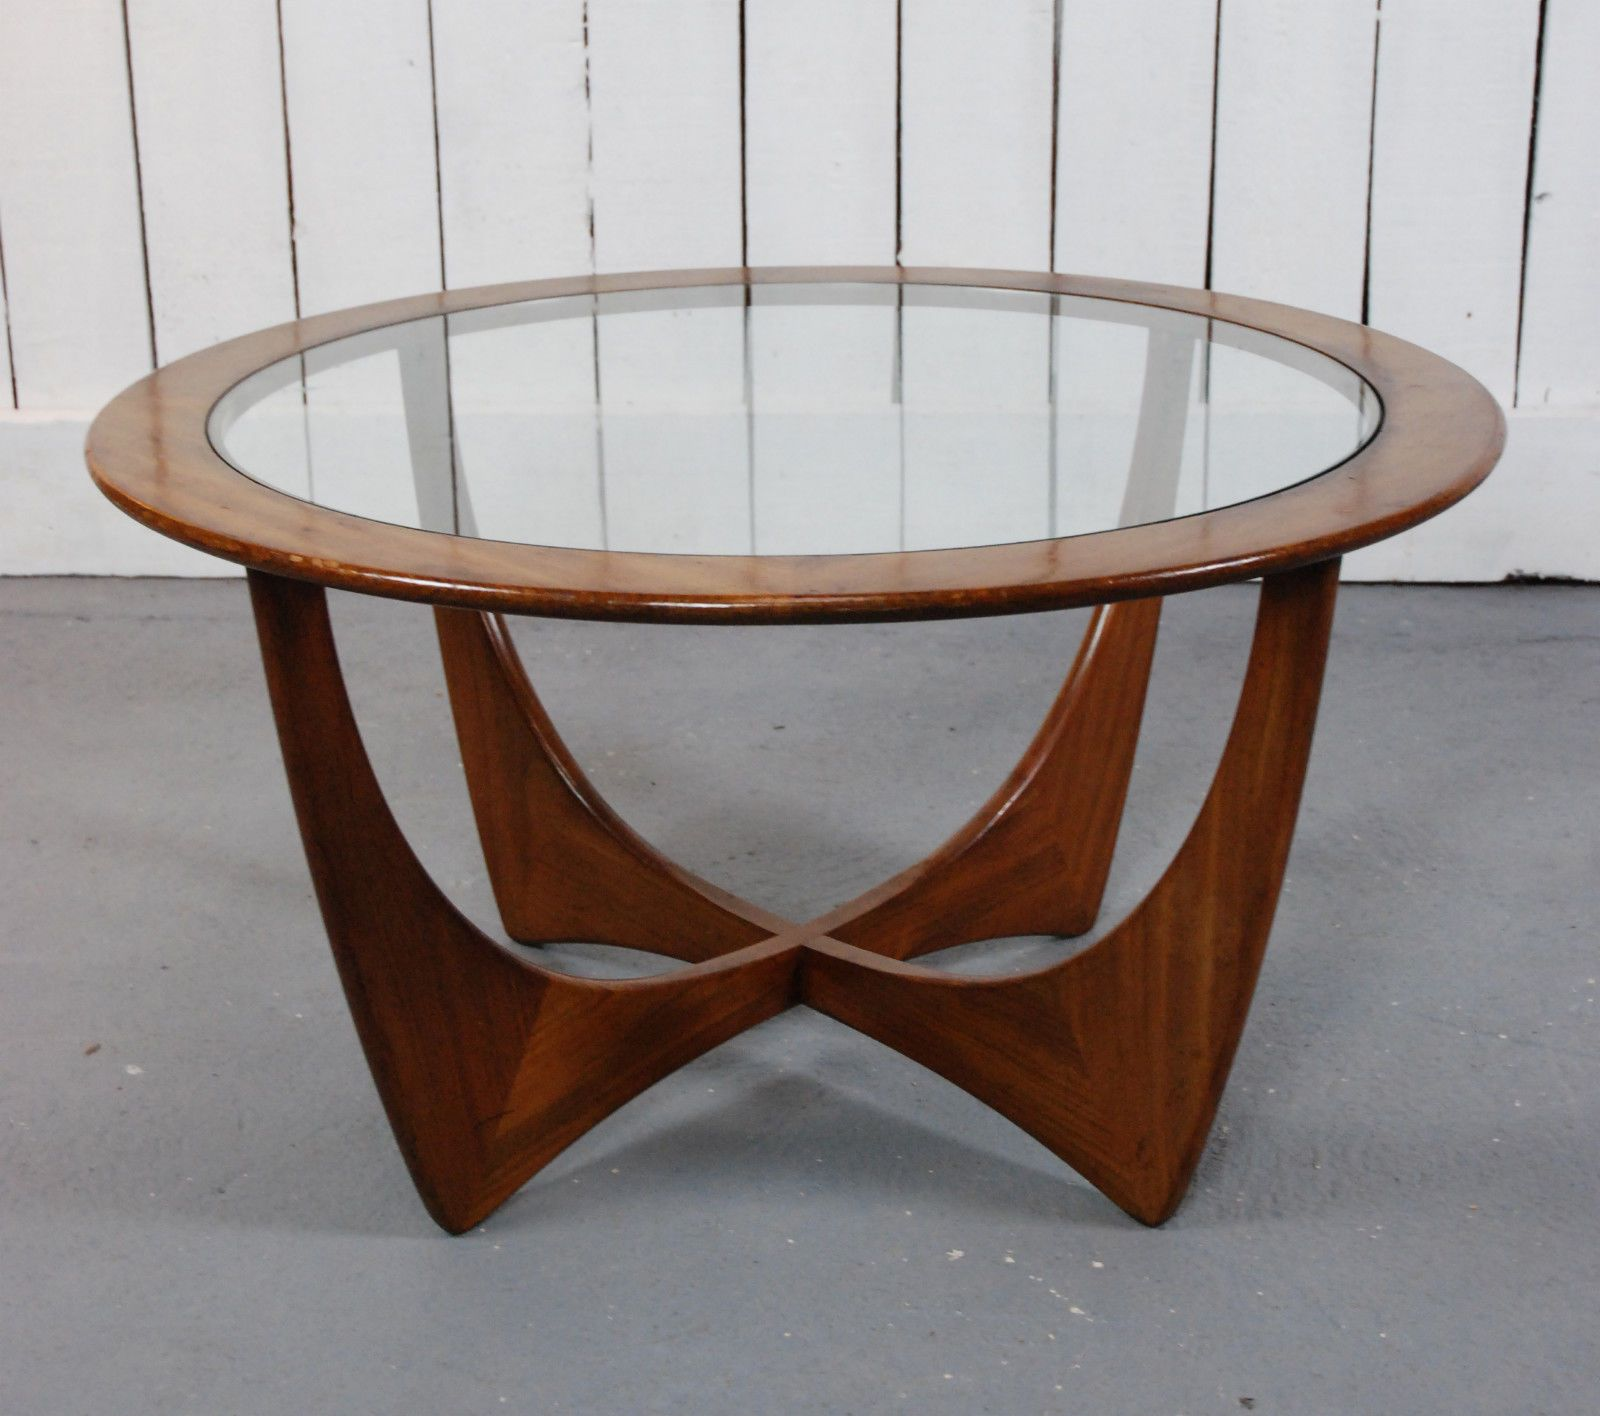 Retro light teak circular glass top coffee table nest of tables by - Retro Teak G Plan Astro Coffee Table Vintage Danish Style Round Glass